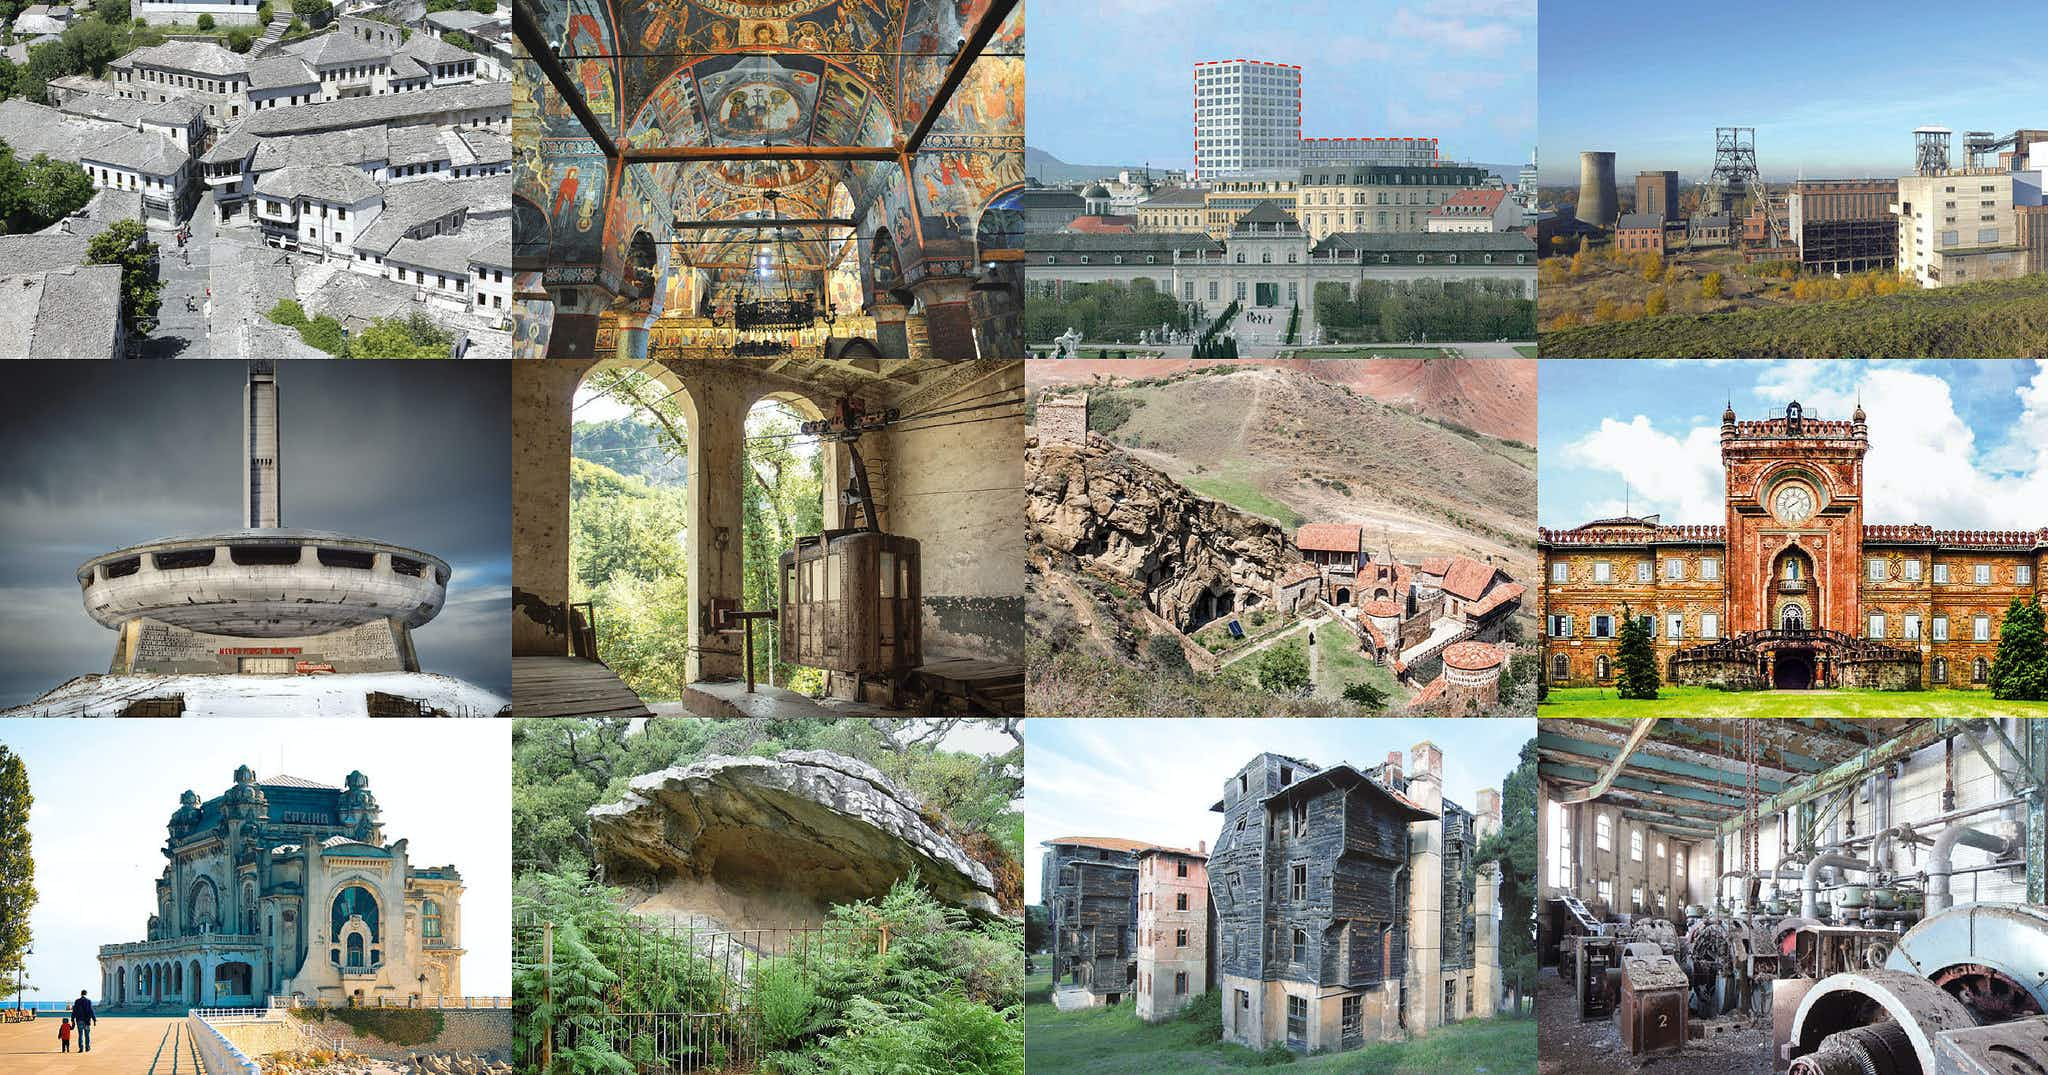 Europe's most endangered heritage sites are in the spotlight